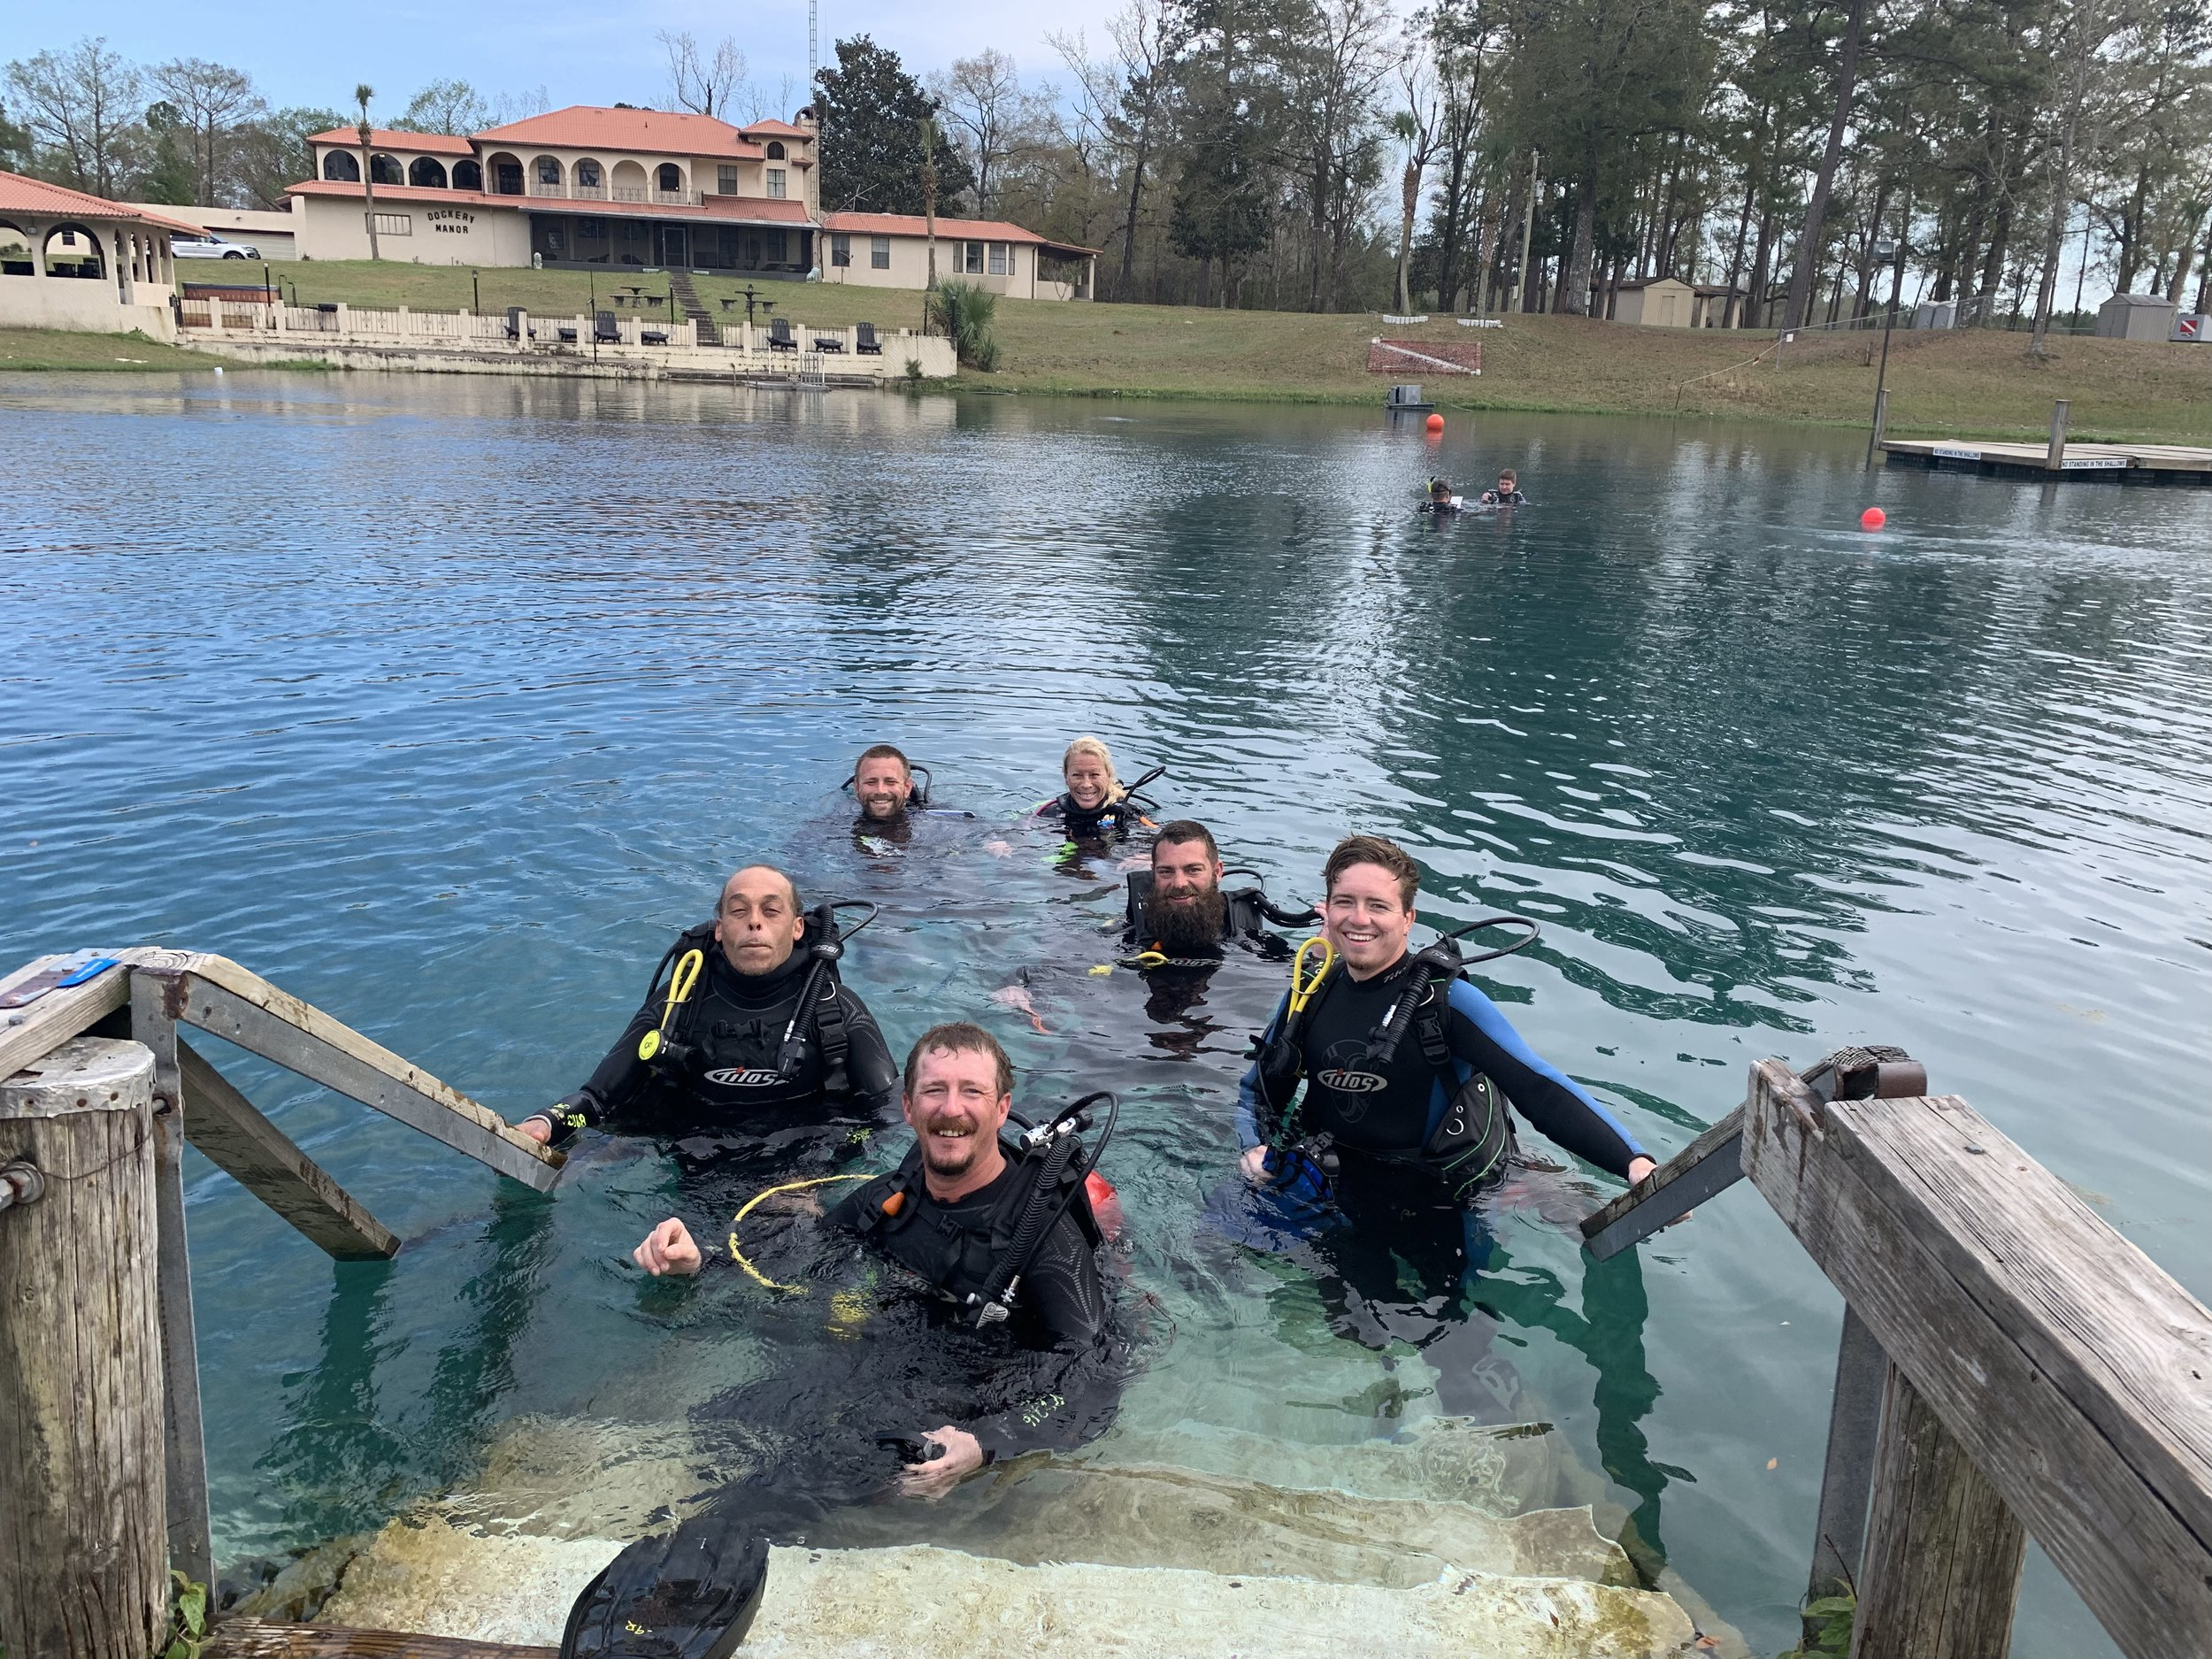 Discover Scuba Experience - $150.00Have you always wondered what it's like to breathe underwater? If you want to try scuba diving, but aren't quite ready to take the plunge into a certification course, Discover Scuba Diving is for you. Vortex Dive Resort offers this course right here at our beautiful spring. While not a scuba certification course, Discover Scuba Diving is a quick and easy introduction to what it takes to explore the underwater world. If after your Discover scuba experience you decide to become a certified scuba diver, 50% of your Discover Scuba Diving cost can be applied to an Open Water Dive Certification with us. Discover Scuba fees include a dive pass, instructor fees, air fills, and all rental gear.To sign up for a PADI Discover Scuba Diving experience, you must be at least 10 years old. No prior experience with scuba diving is necessary, but you need to be in reasonable physical health. This course does not result in a certification.